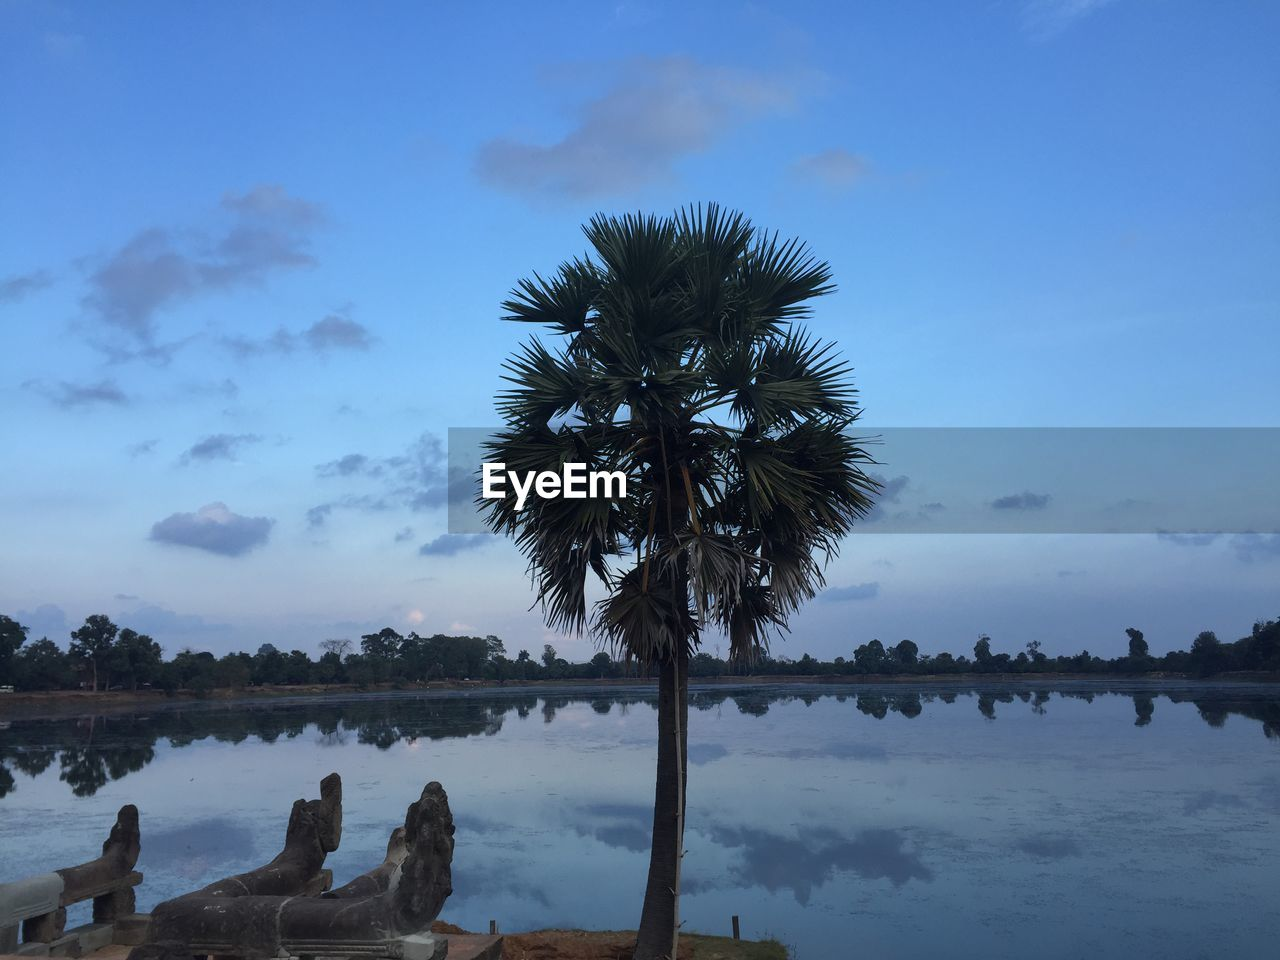 tree, sky, water, nature, beauty in nature, outdoors, palm tree, scenics, cloud - sky, tranquility, tranquil scene, no people, tree trunk, day, lake, growth